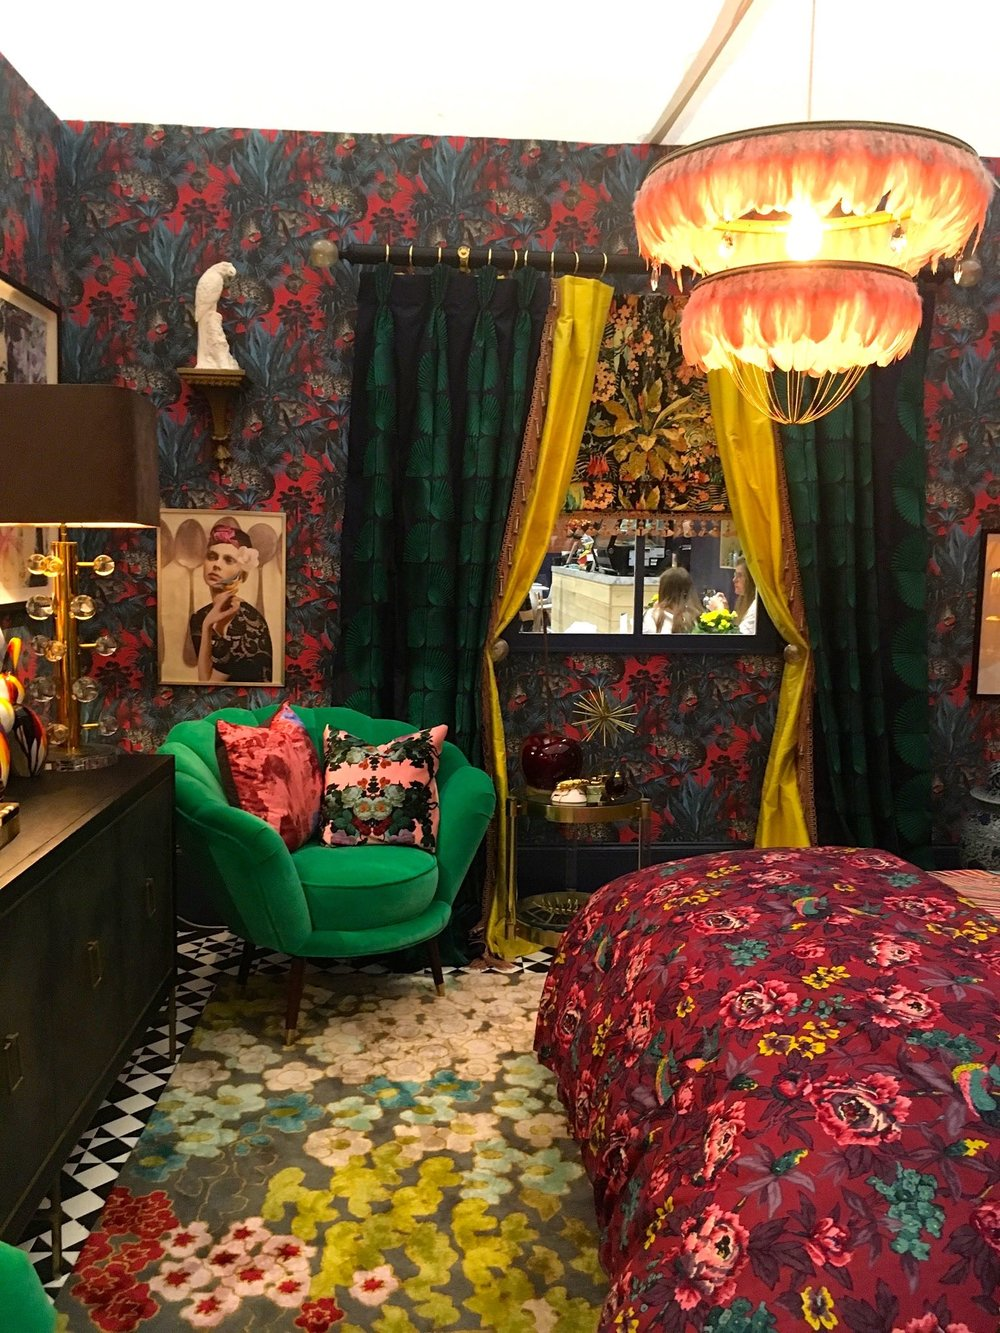 Patterns everywhere you look in this bedroom room set at Grand Designs Live